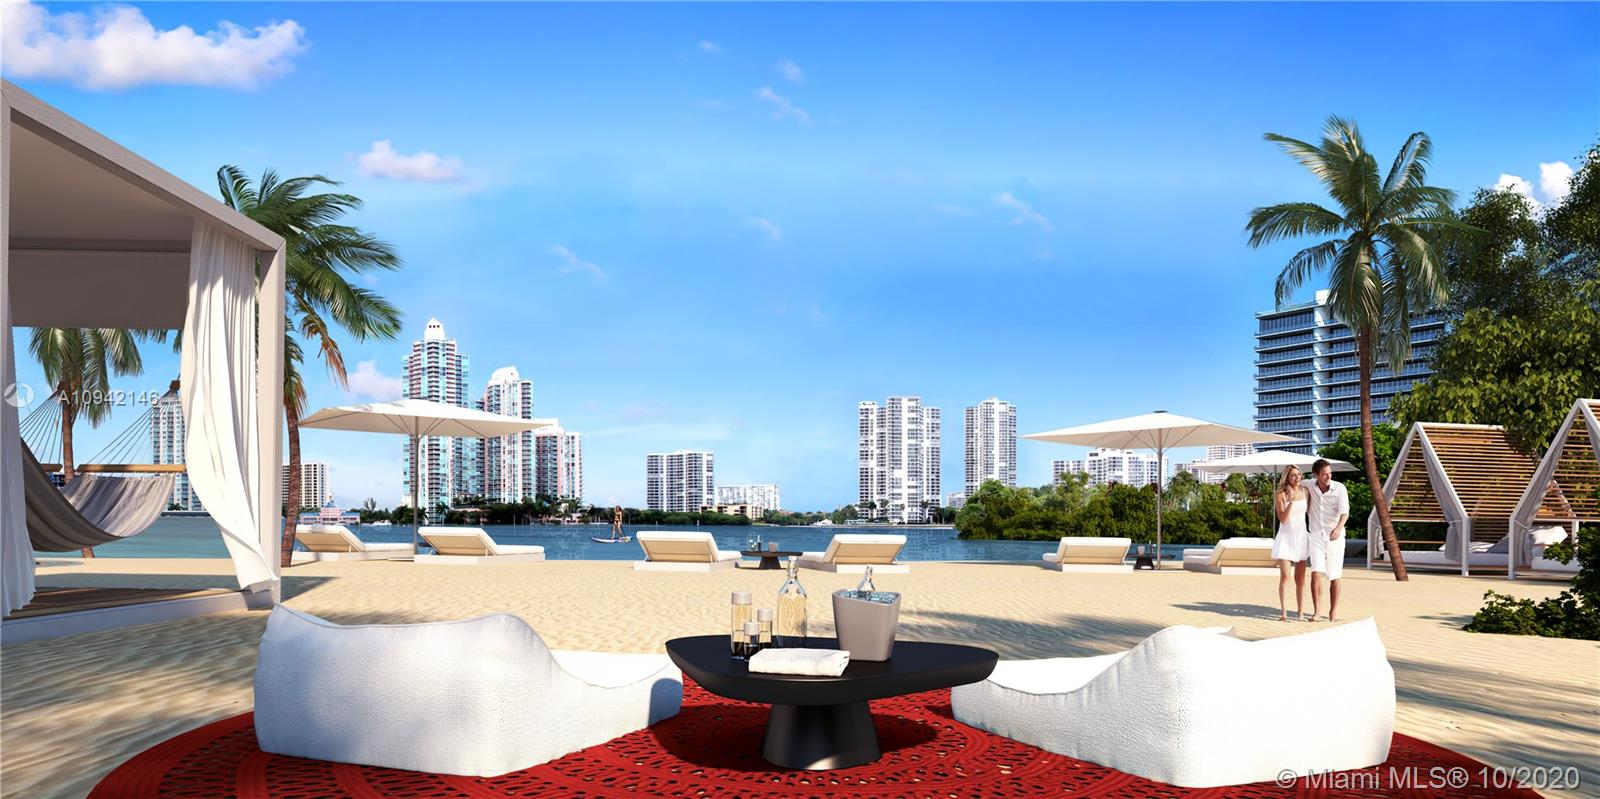 Beautiful 3BED/4.5 BATH UNIT located on South Florida's last private island. Unit offers gorgeous views of the ocean and intercoastal. Amenities galore!! Prive gatehouse entry, on site restaurant, full time concierge, marina, pier, 20,000 sq/ft of spa and gym, 2 pools, social rooms, cigar room, wine cellars, teenage room, tennis court, children's playground, valet parking, dog grooming salon and SO MUCH MORE!!!! We also have other residences available that are not listed. Many other advantages of purchasing direct.